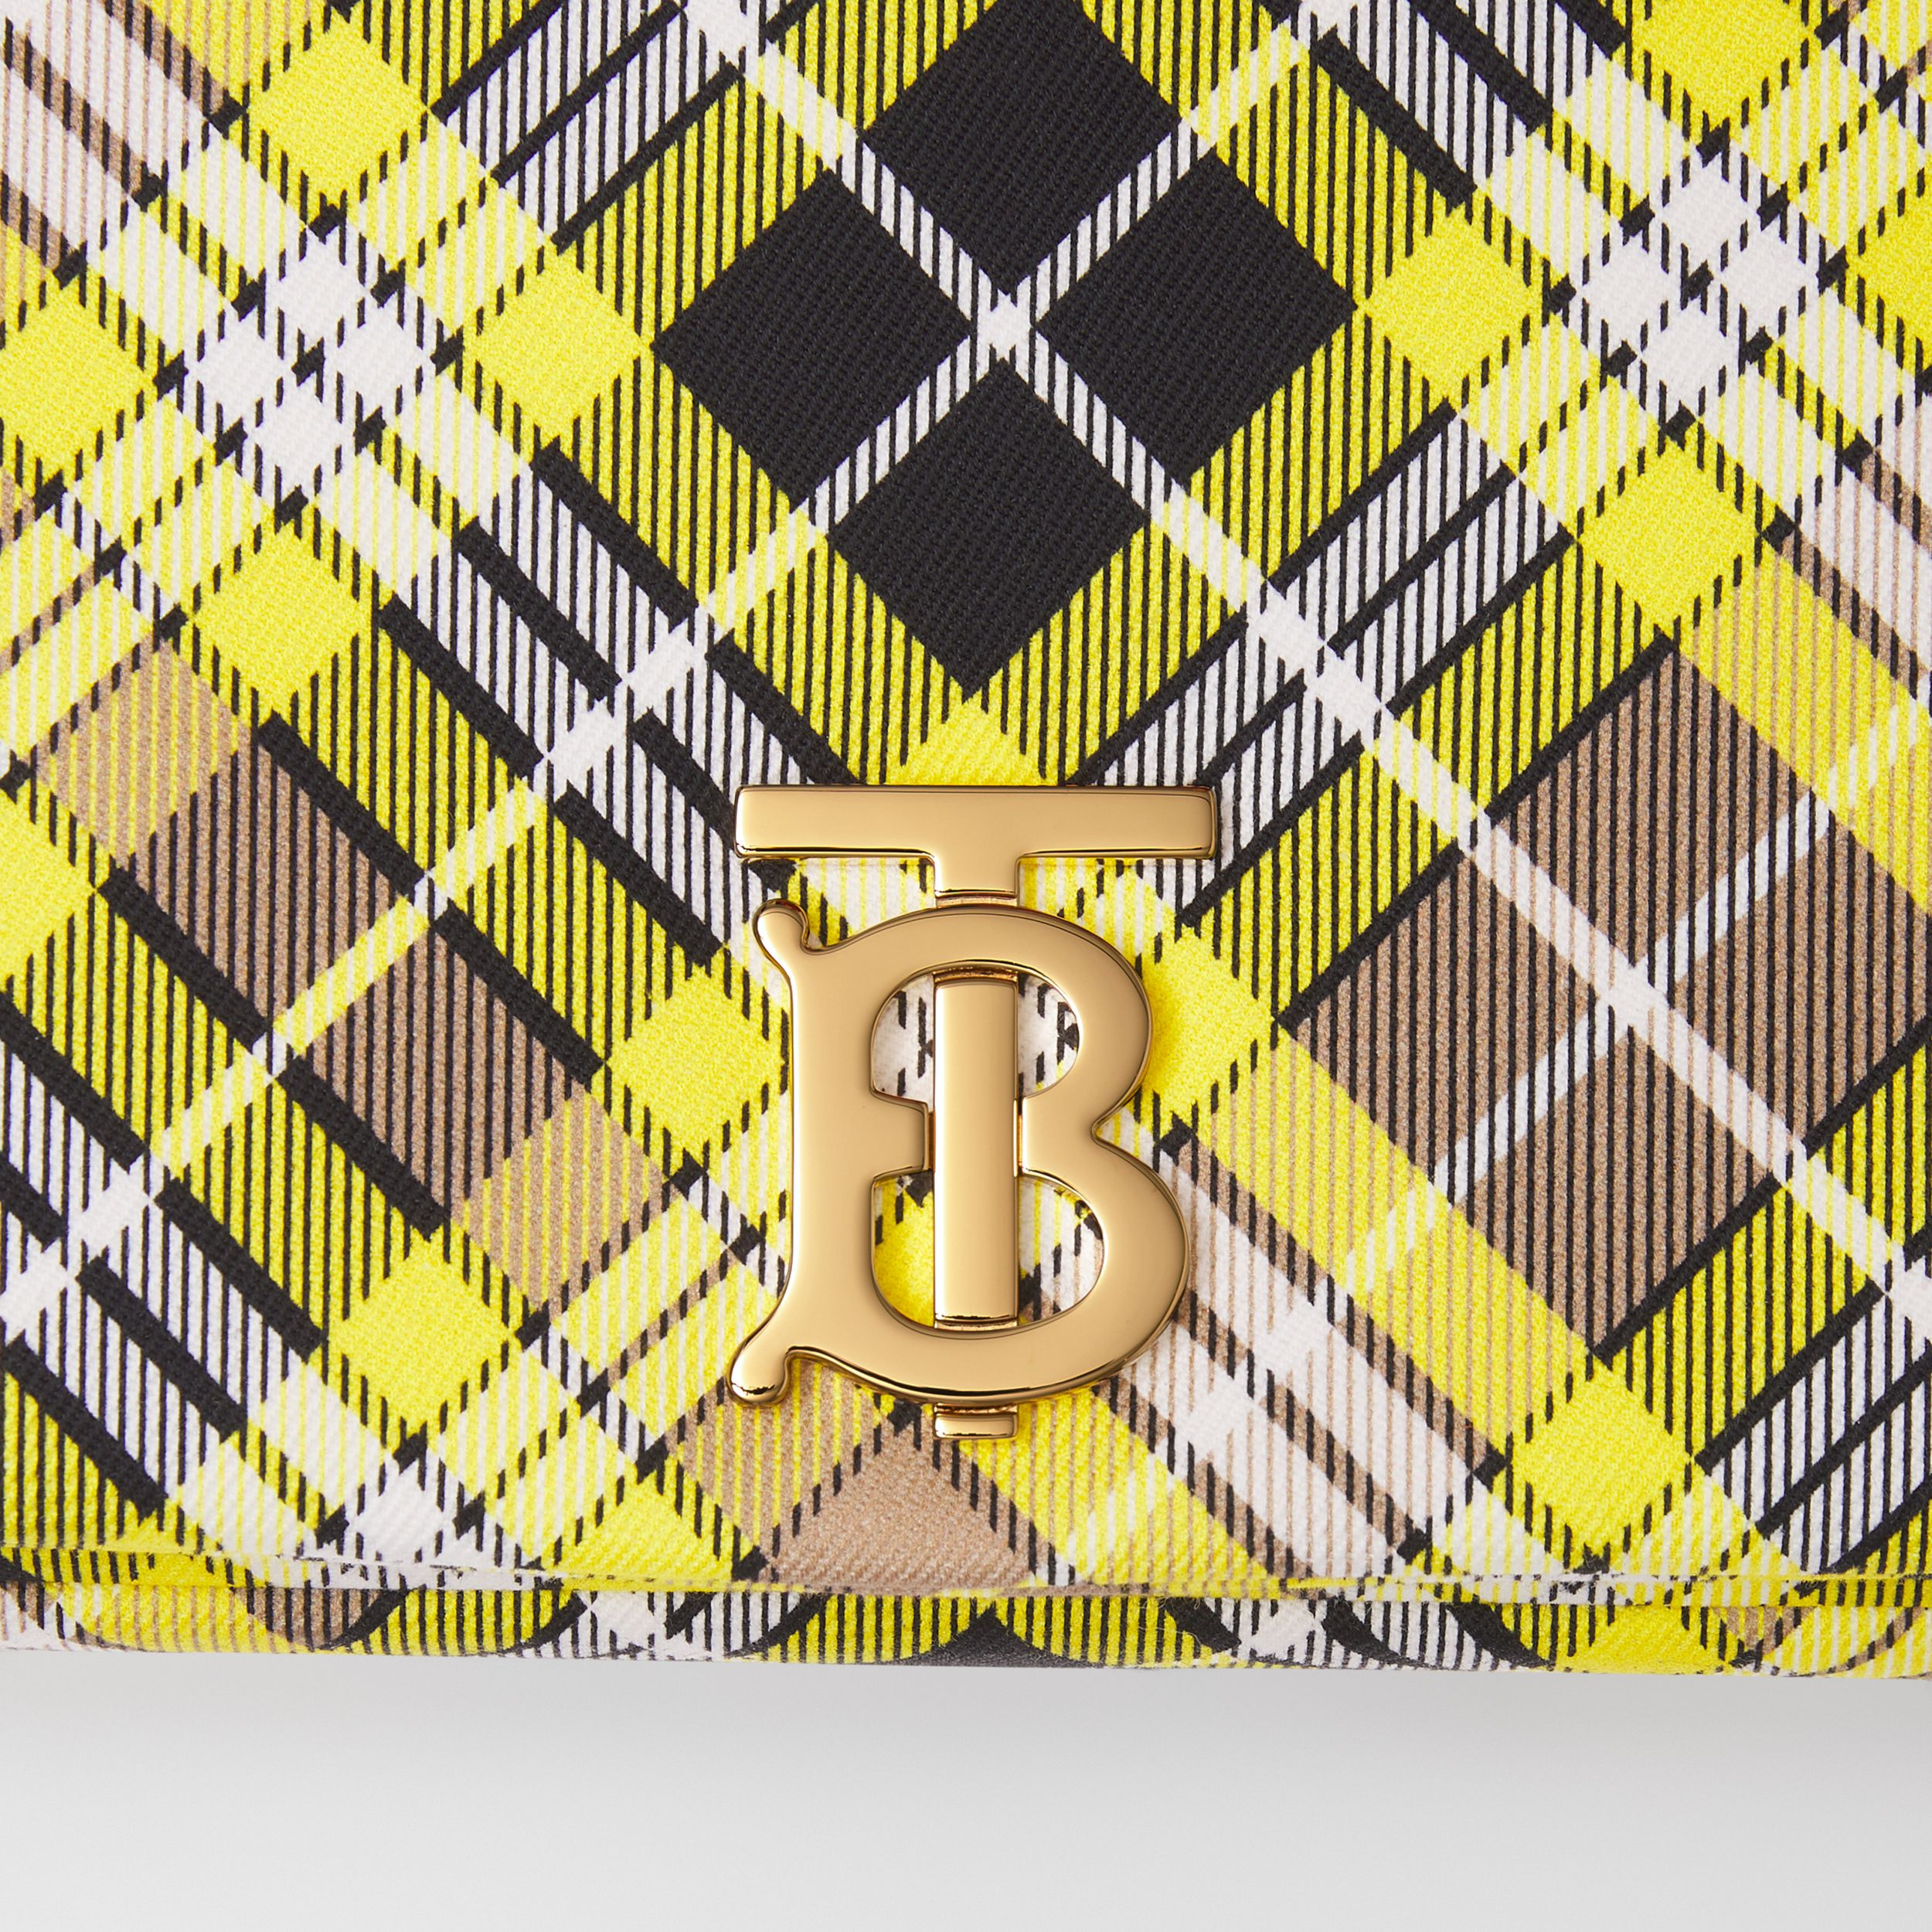 Small Tartan Cotton Lola Bag in Marigold Yellow - Women | Burberry - 2